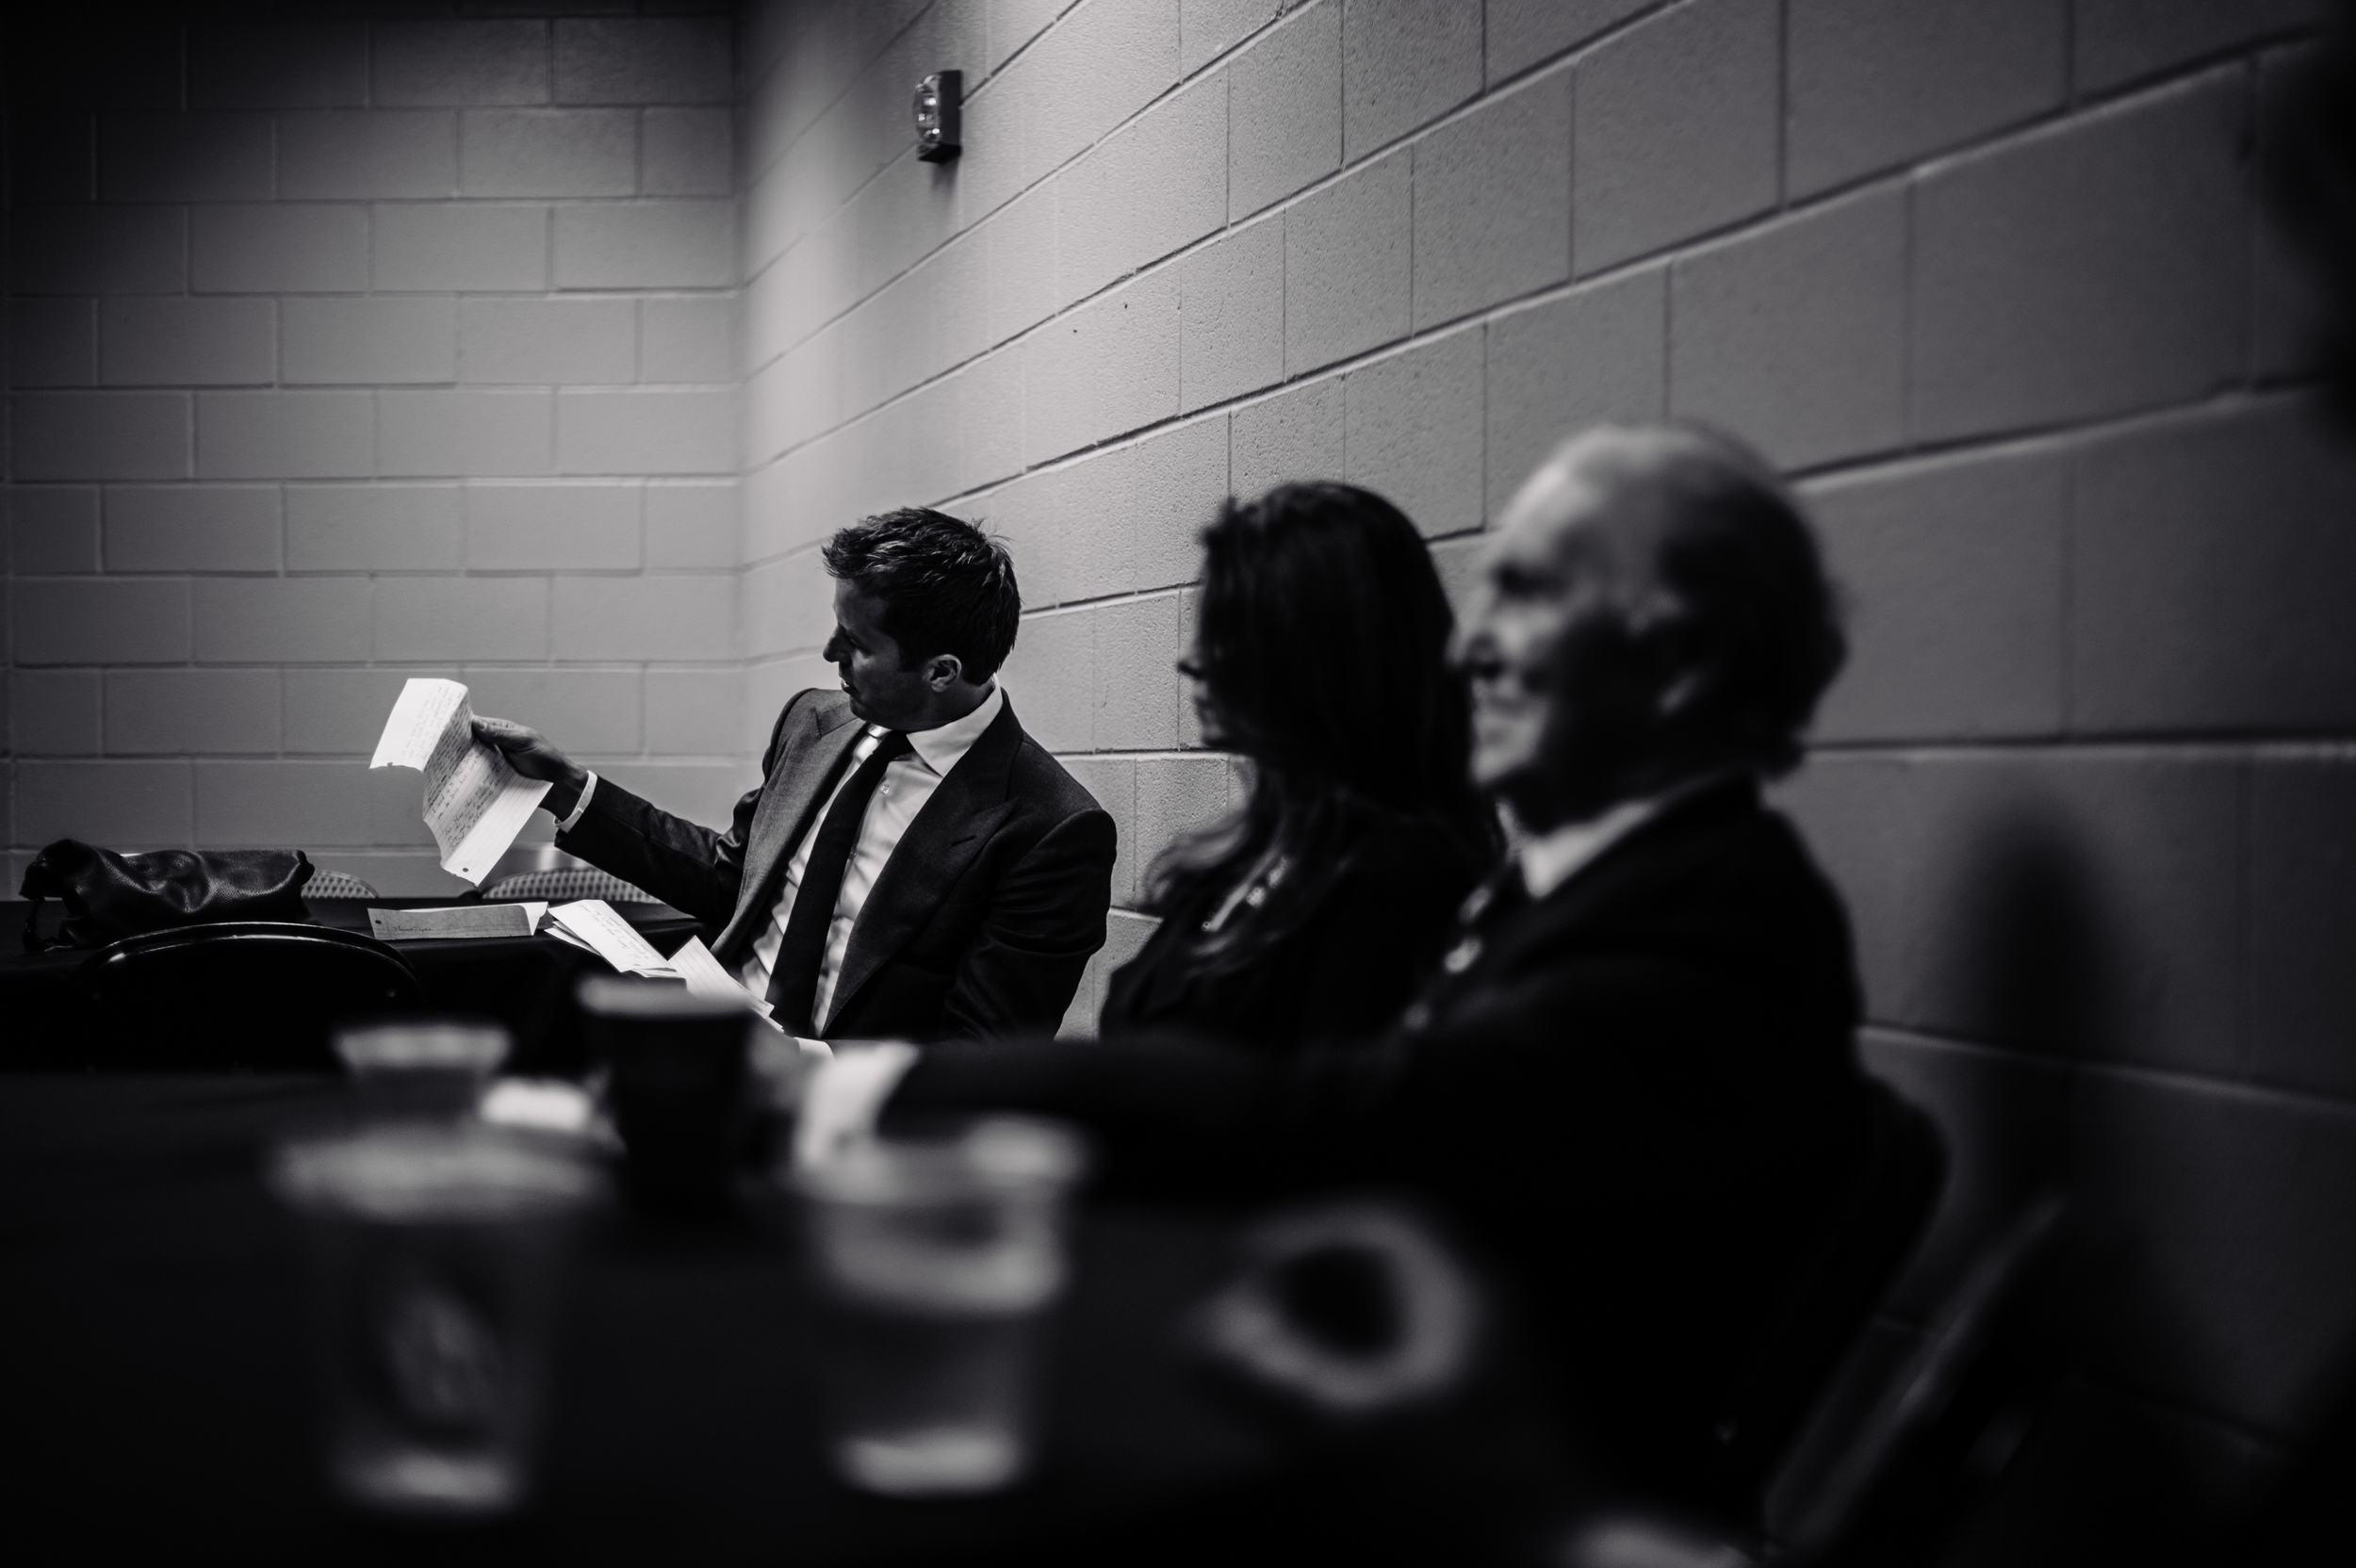 Mike Modano looks over his notes in the green room, as former Dallas Stars owner, Norm Green, looks on.